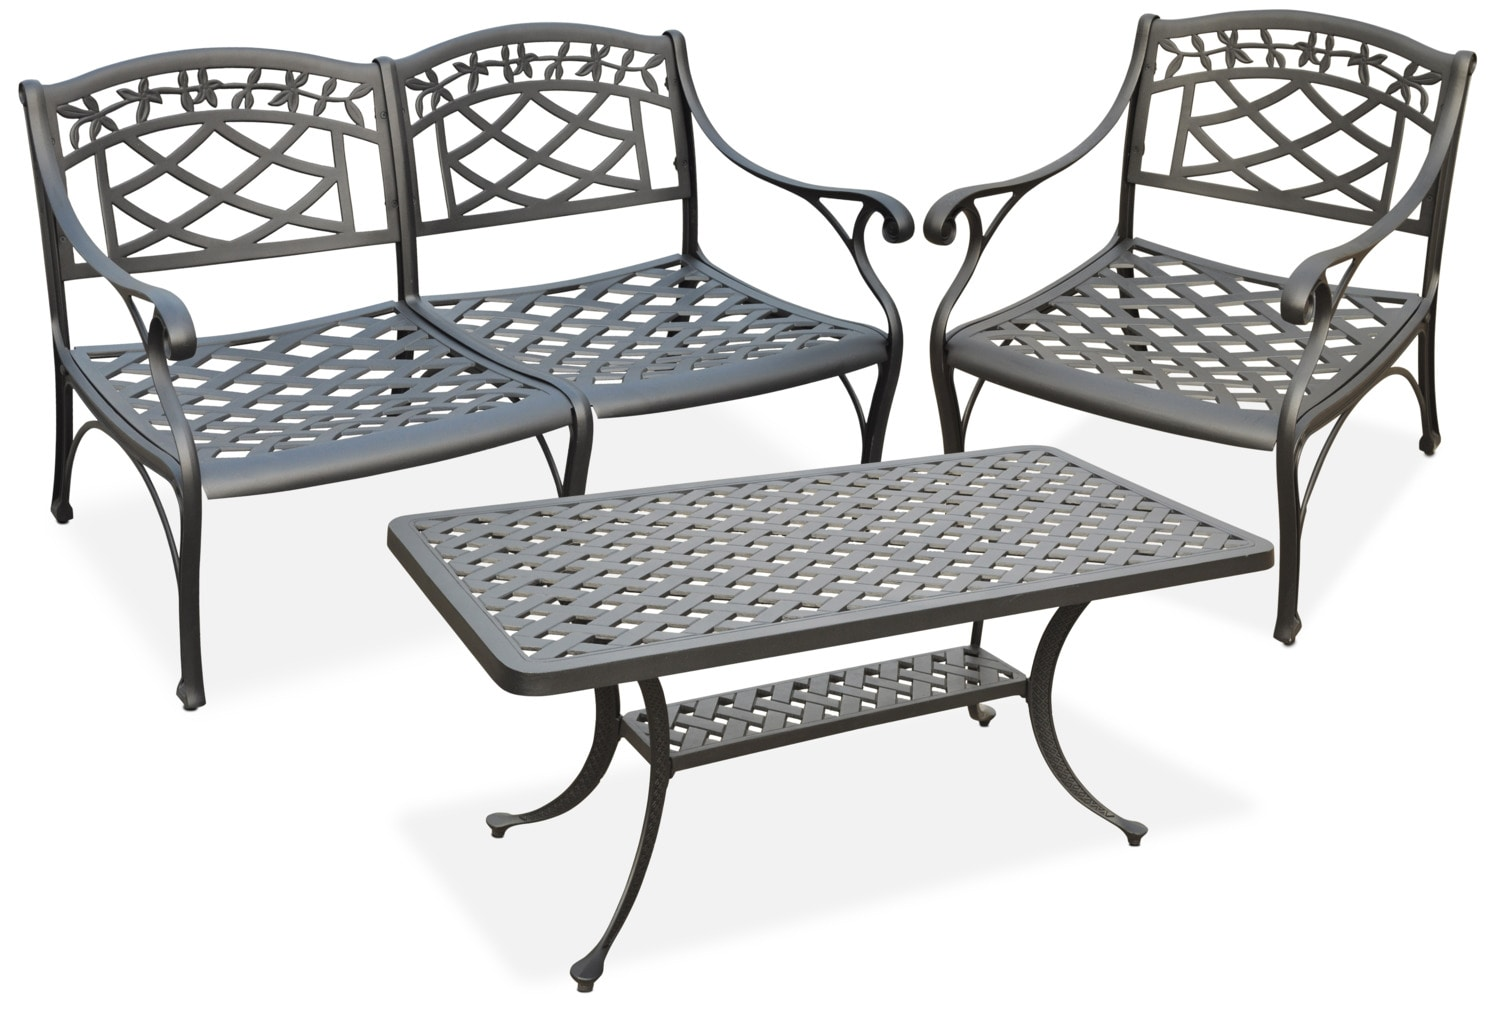 Outdoor Furniture - Hana Outdoor Loveseat, Chair and Coffee Table Set